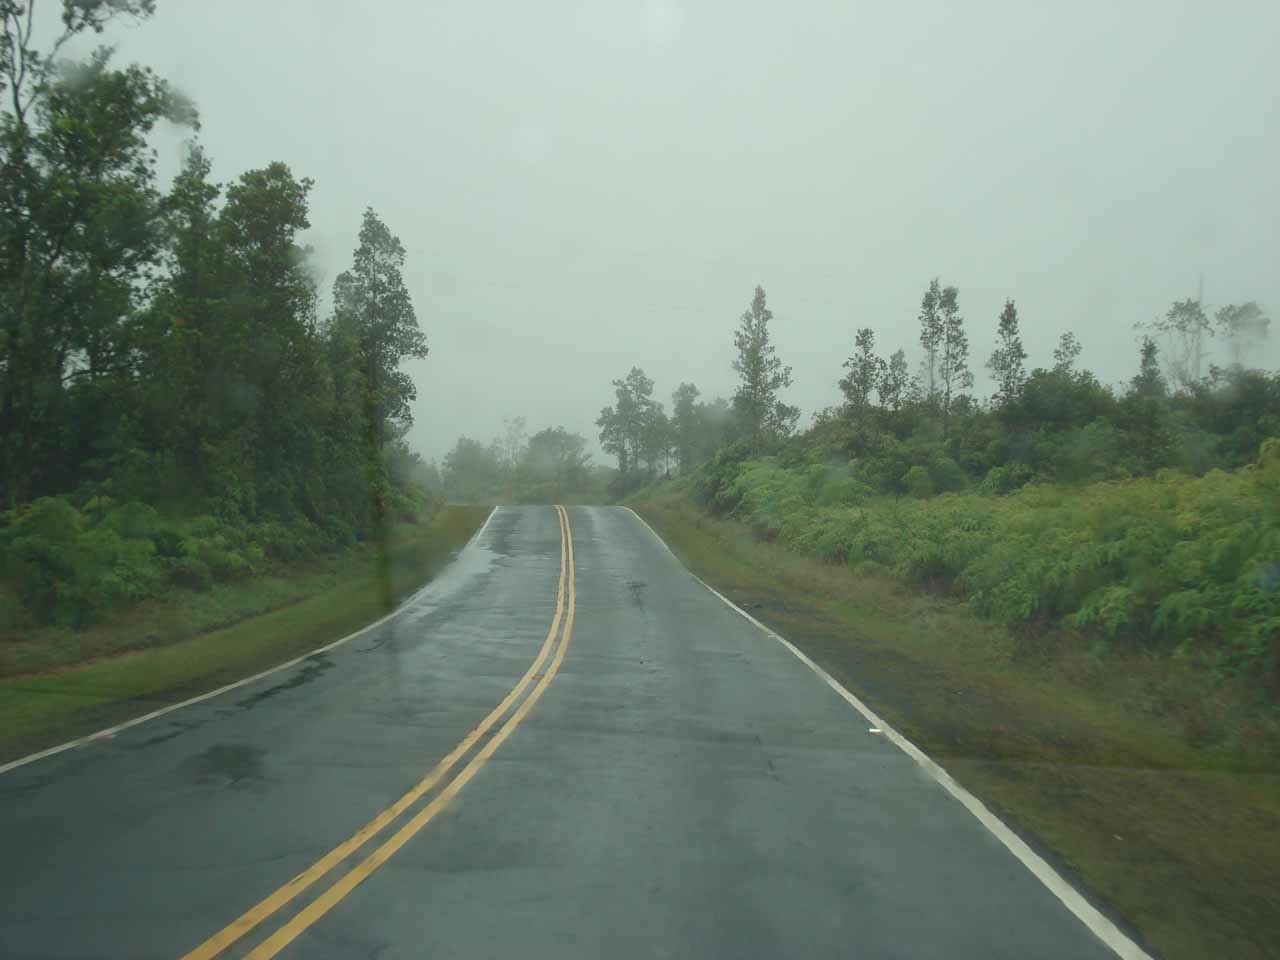 In the lush, rainy part of Saddle Road